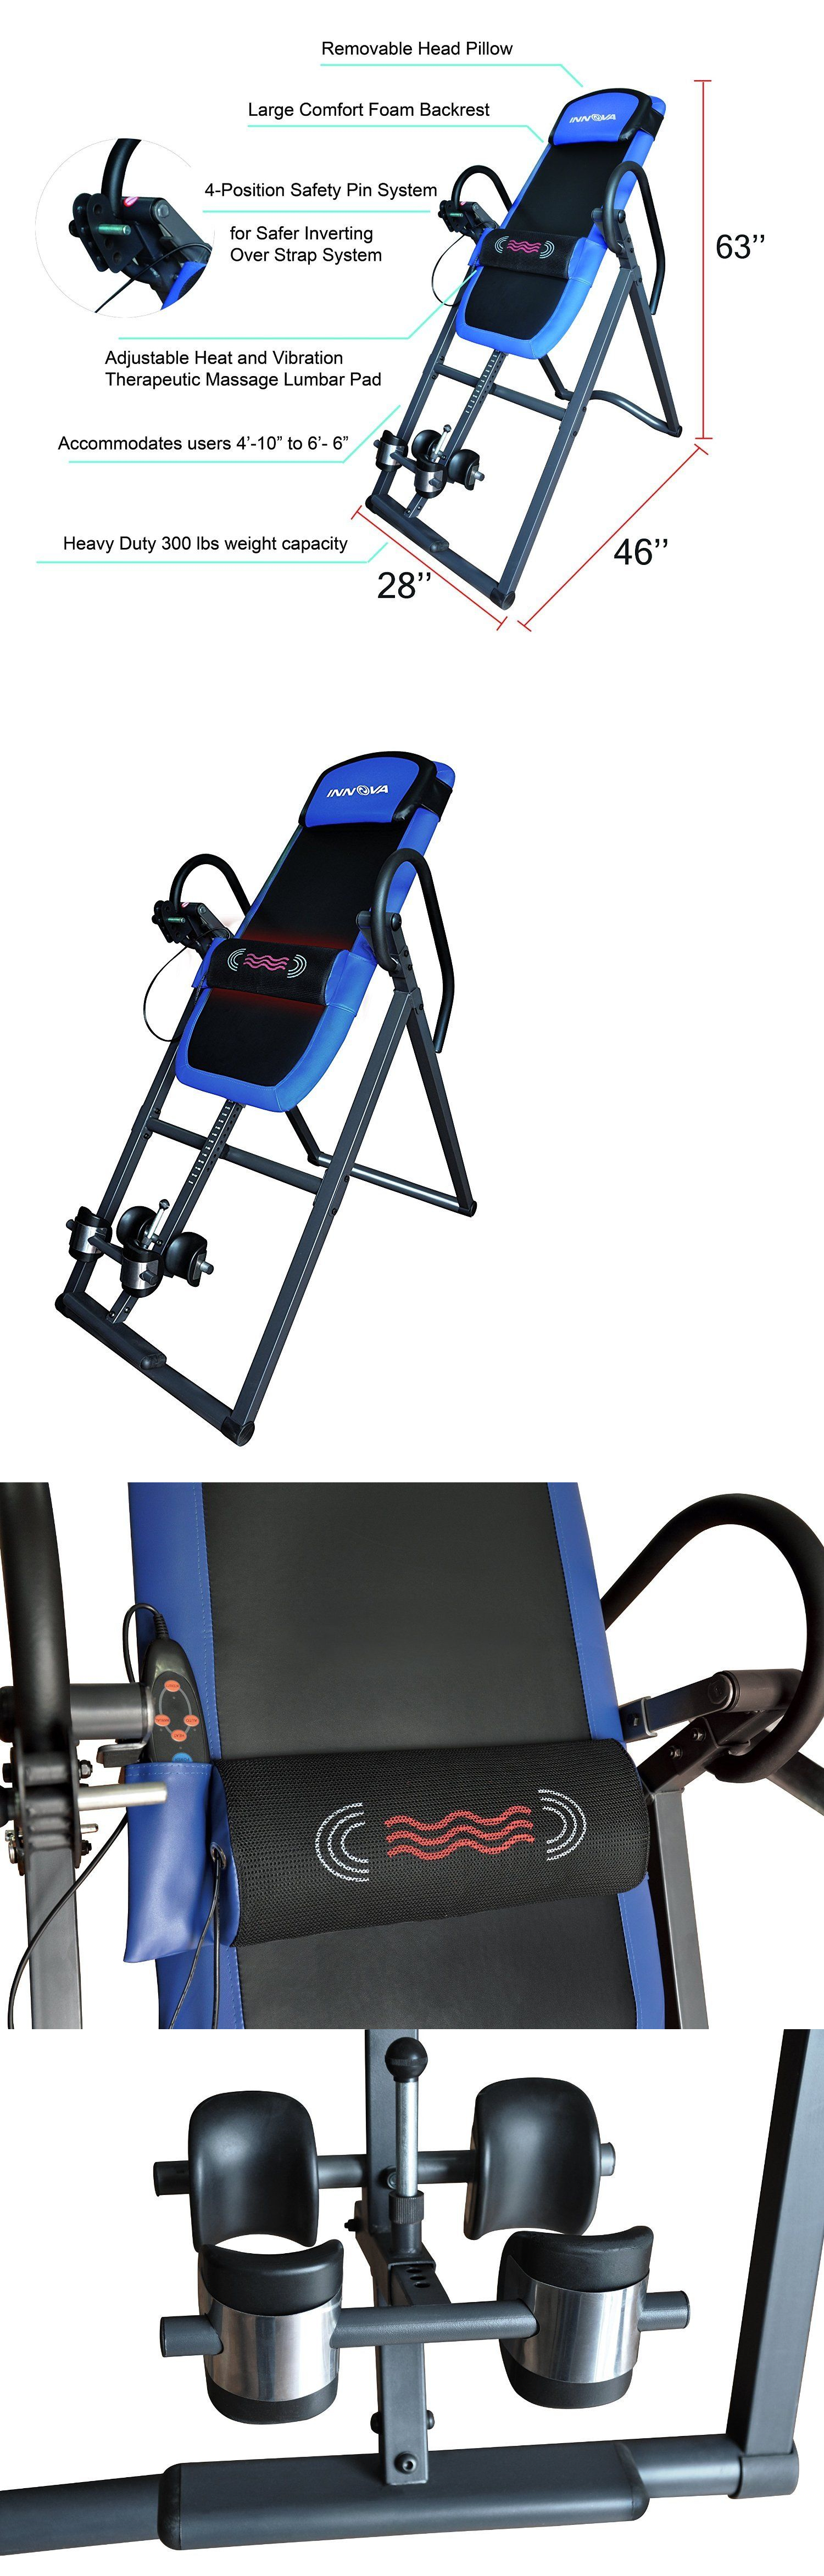 Inversion Tables 112954: Inversion Table Therapy Back Pain Relief Gravity Fitness Chiropractic Recovery BUY IT NOW ONLY: $200.99